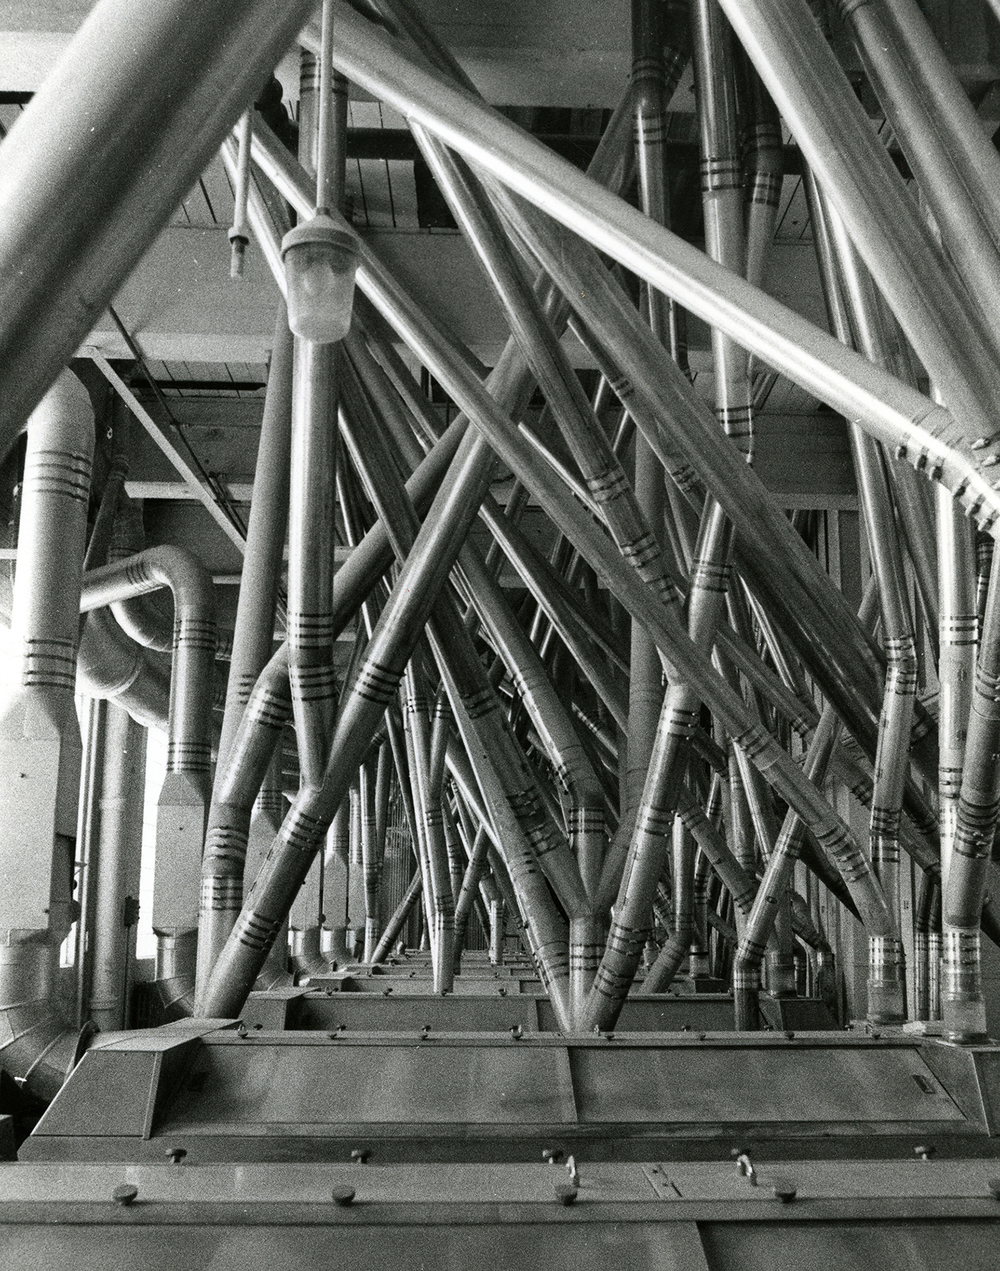 Pillsbury Mills, June 19, 1979. Flour moves from floor to floor through pneumatic tubes. File/The State Journal-Register